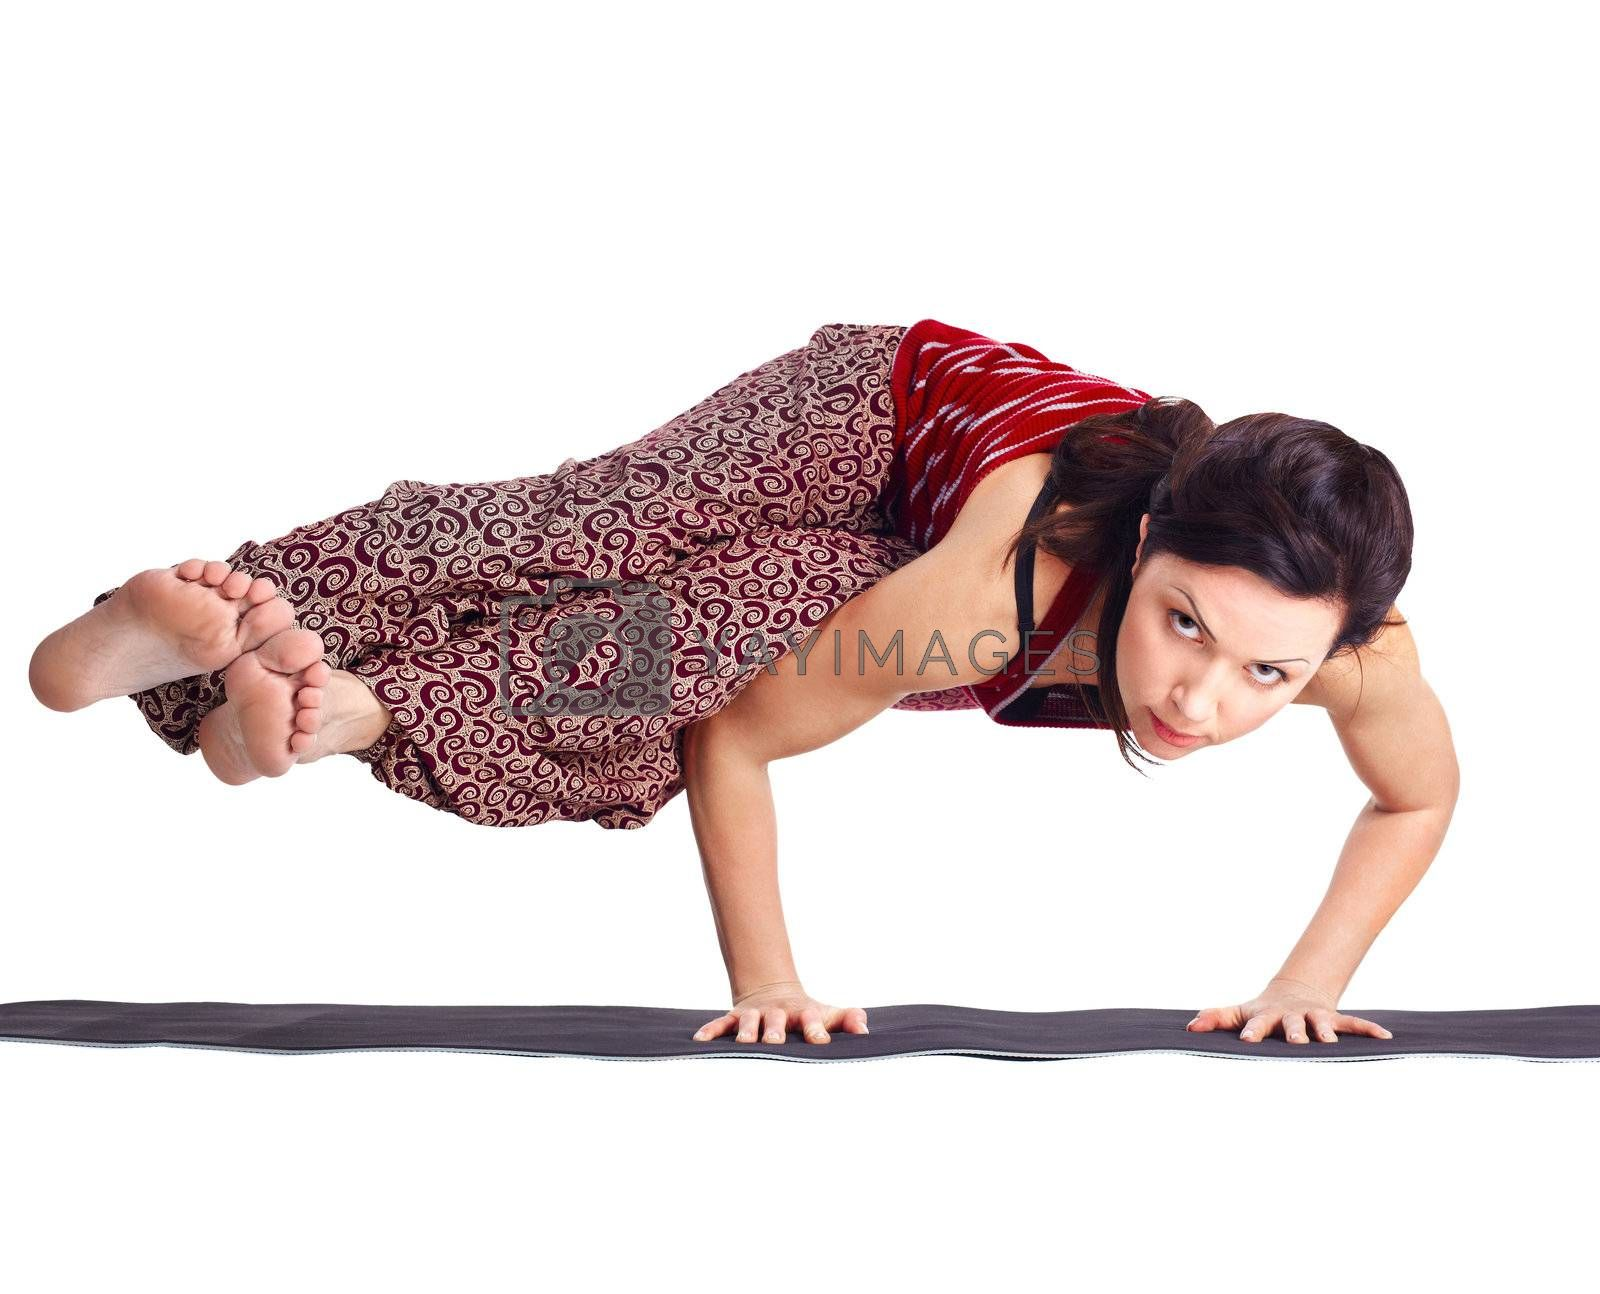 full-length portrait of beautiful woman working out yoga exercise balancing on hands in ashtavakrasana pose